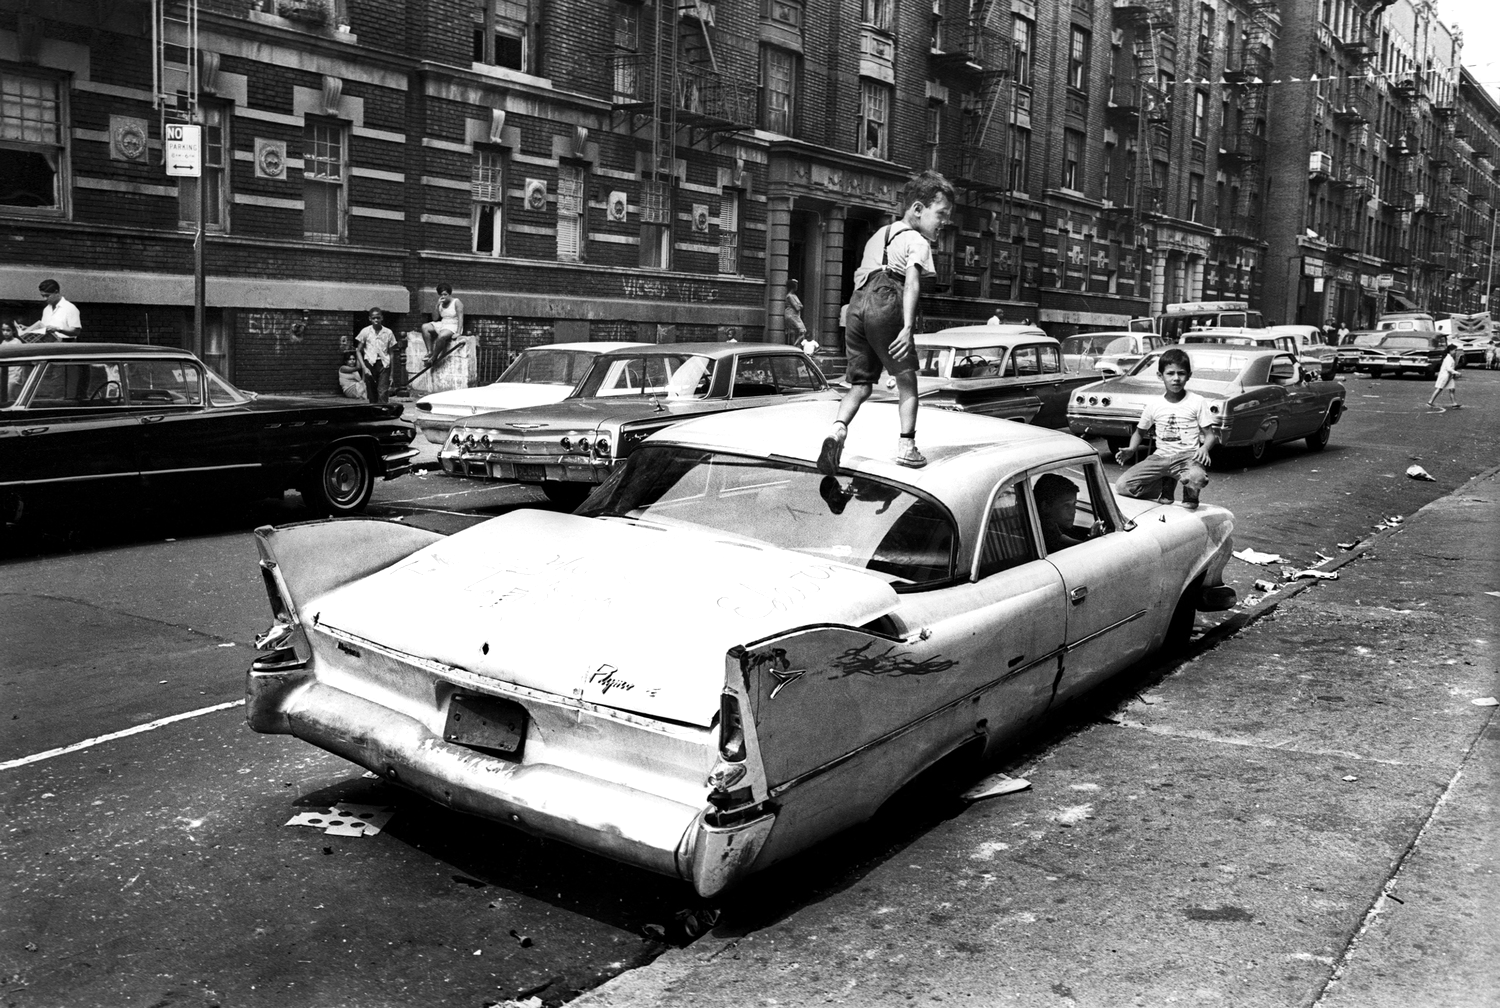 An abandoned car becomes a place for kids to play on Fox Street. From the mid-1960s to the late-1970s, the quality of life for Bronx residents declined sharply. Summer, 1966 © Jean-Pierre Laffont